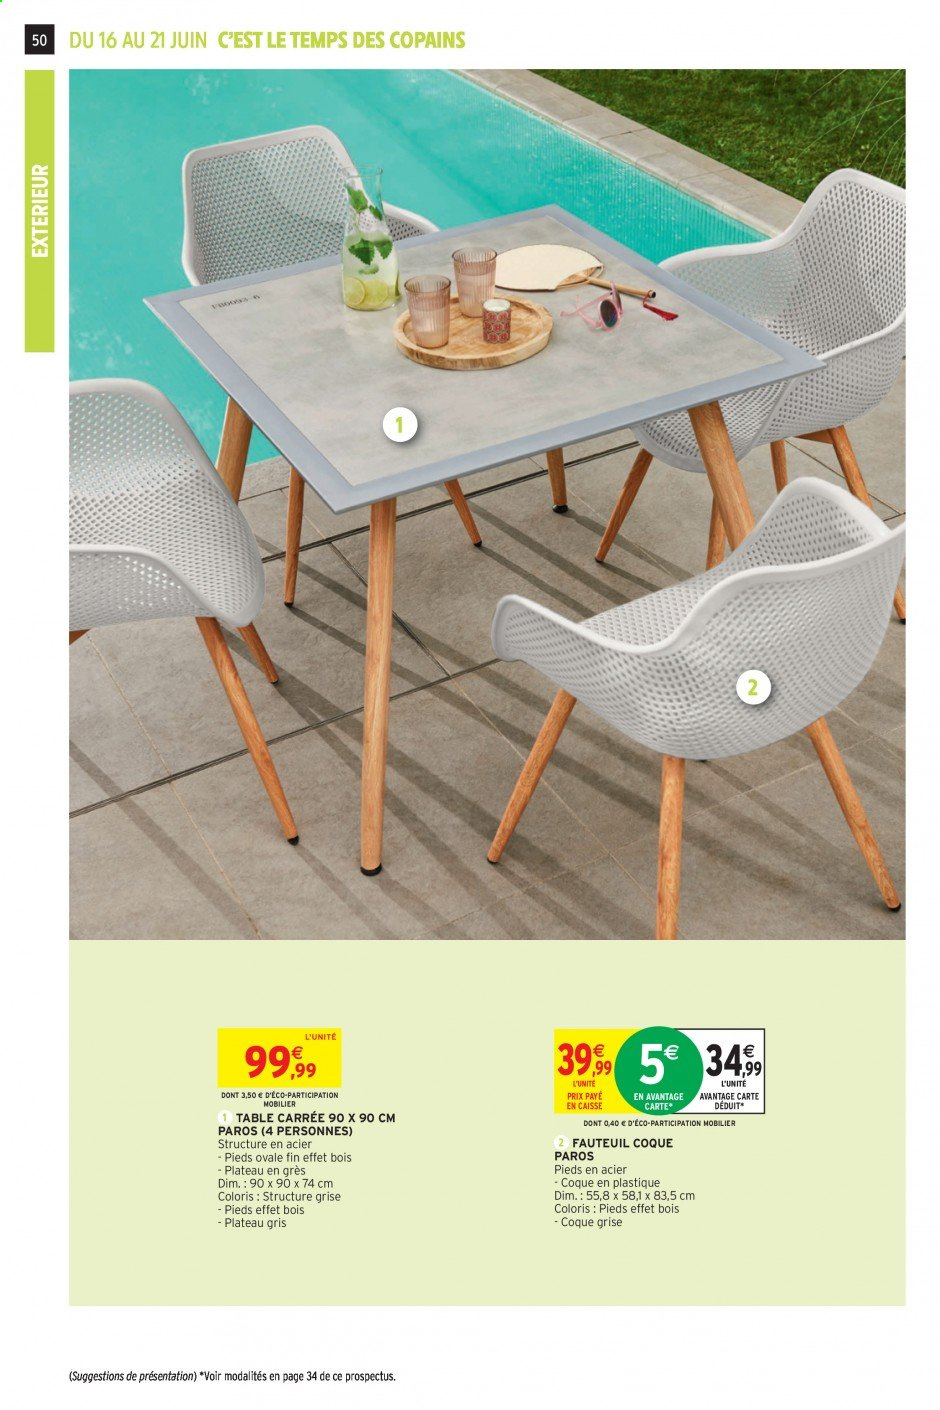 Catalogue Intermarche 16 06 2020 21 06 2020 Page 49 Vos Promos